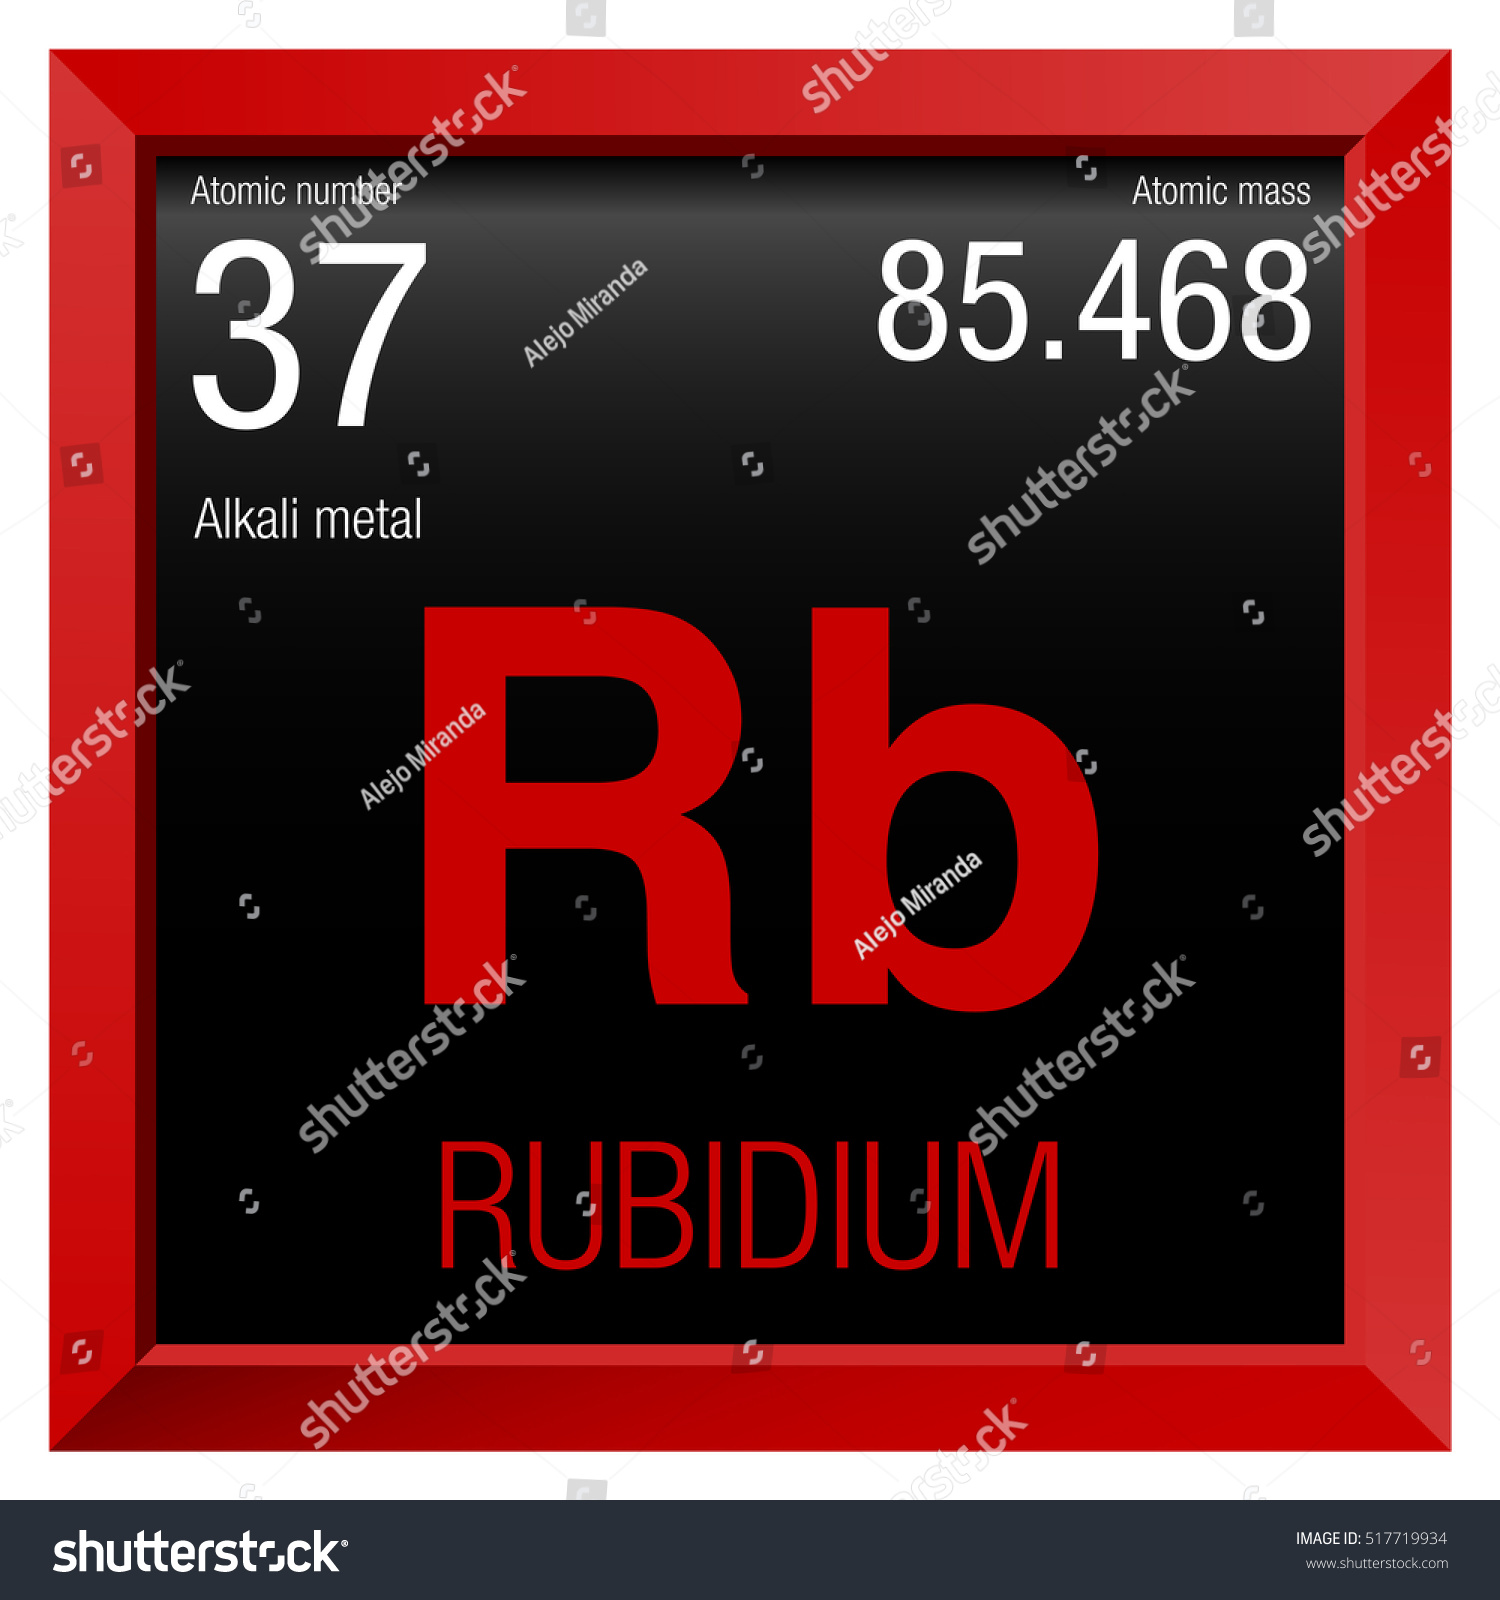 73 lewis symbols and structures sysml activity diagram the periodic table displays the symbols and images periodic stock vector rubidium symbol element number of the periodic table of the elements chemistry red gamestrikefo Image collections